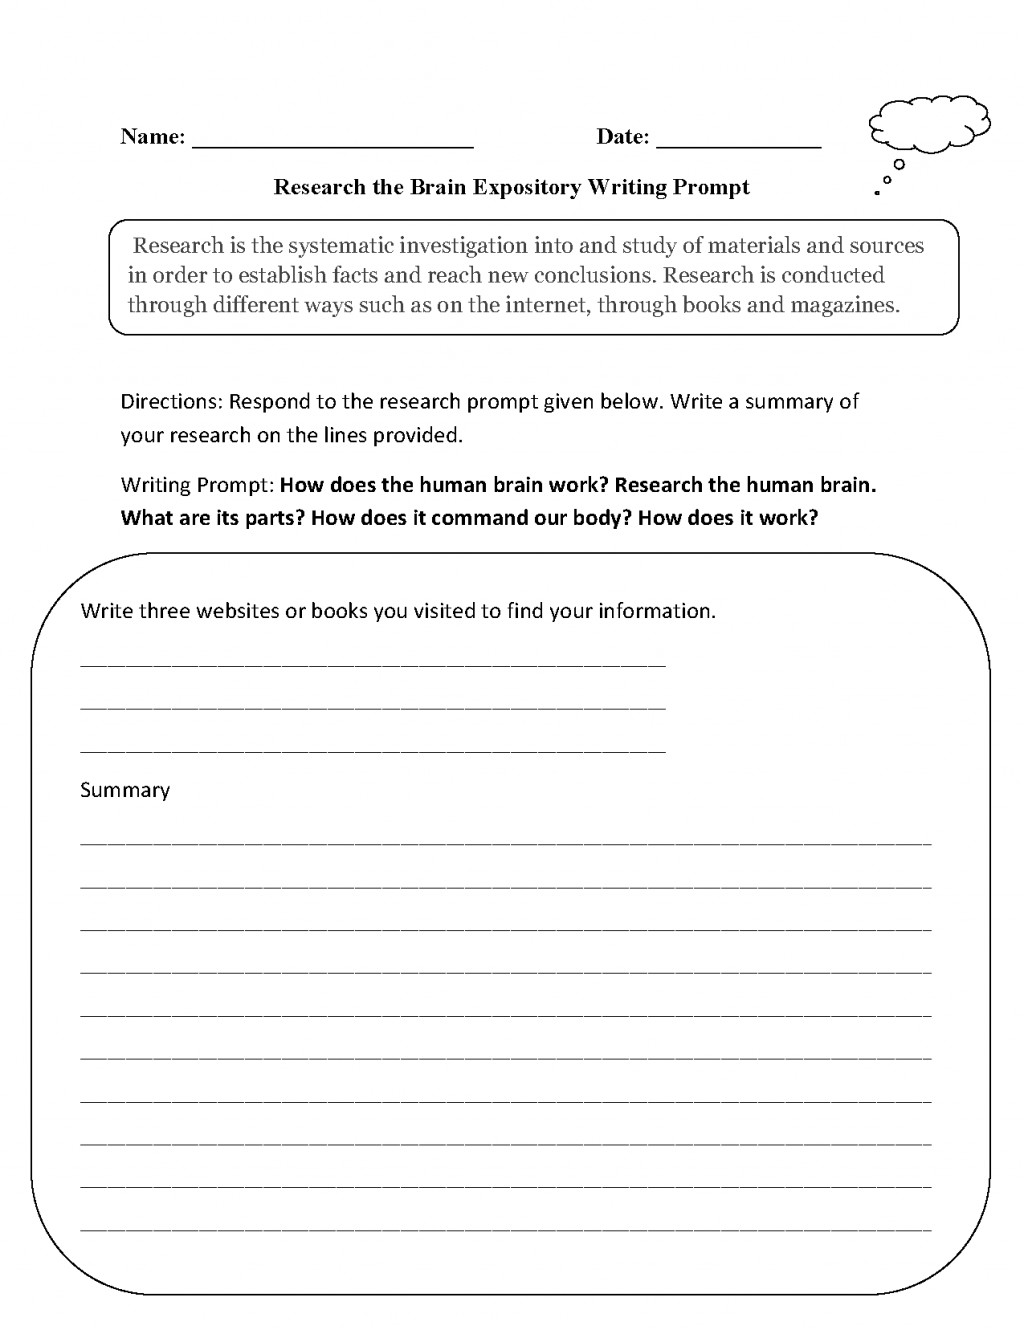 003 Research Brain Expository Writing Prompt Essay Example Formidable Prompts Narrative For Middle School 5 Paragraph 5th Grade Large